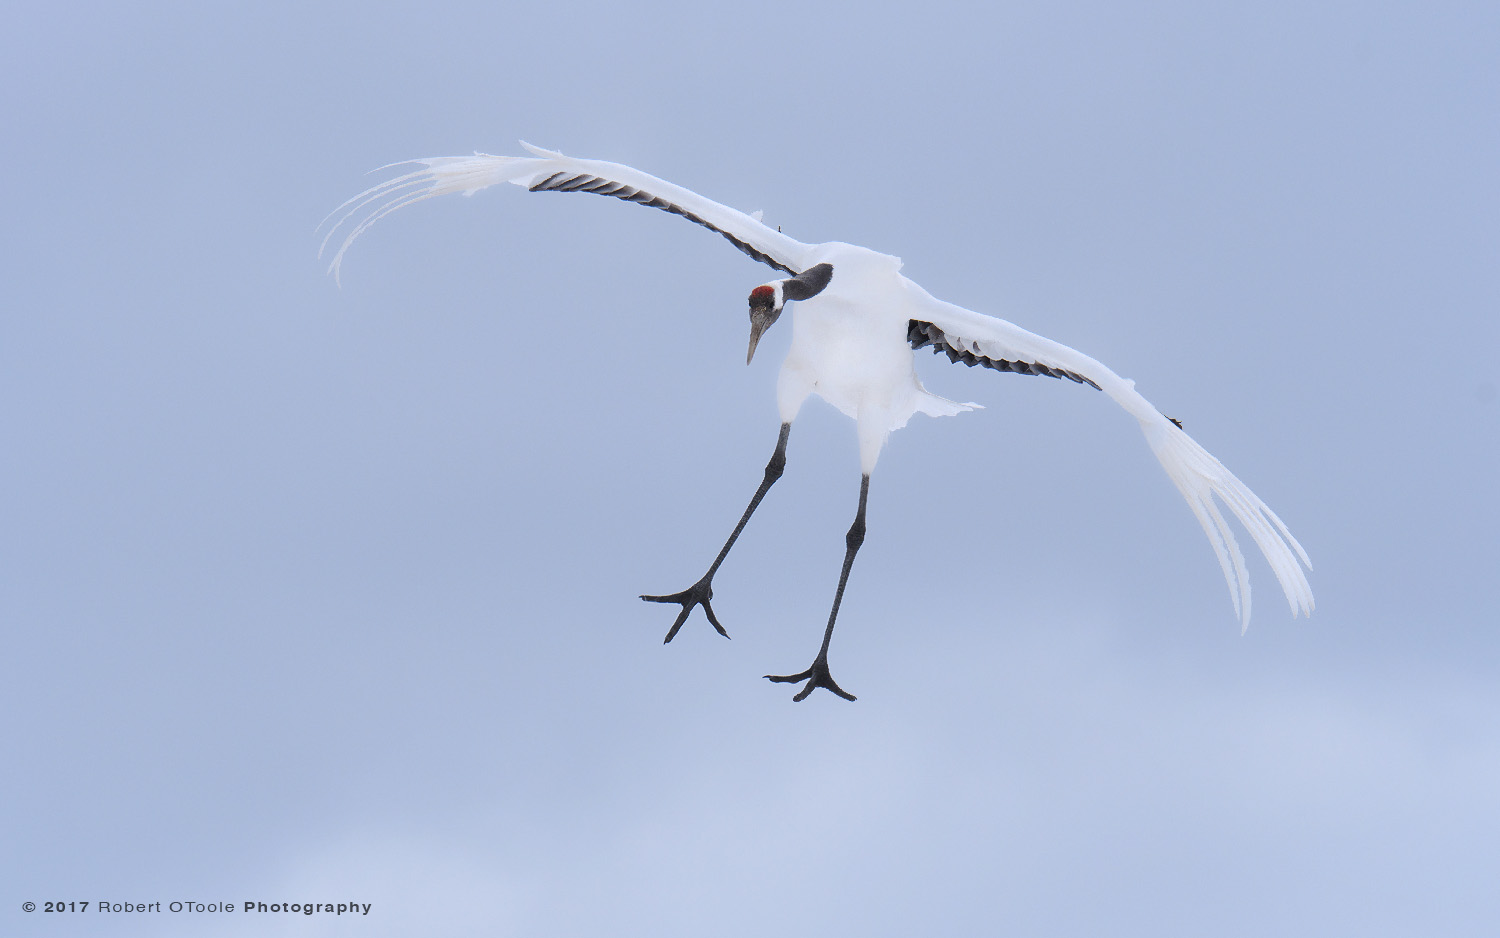 Japanese Red-Crowned Crane Parachuting Against Storm Clouds